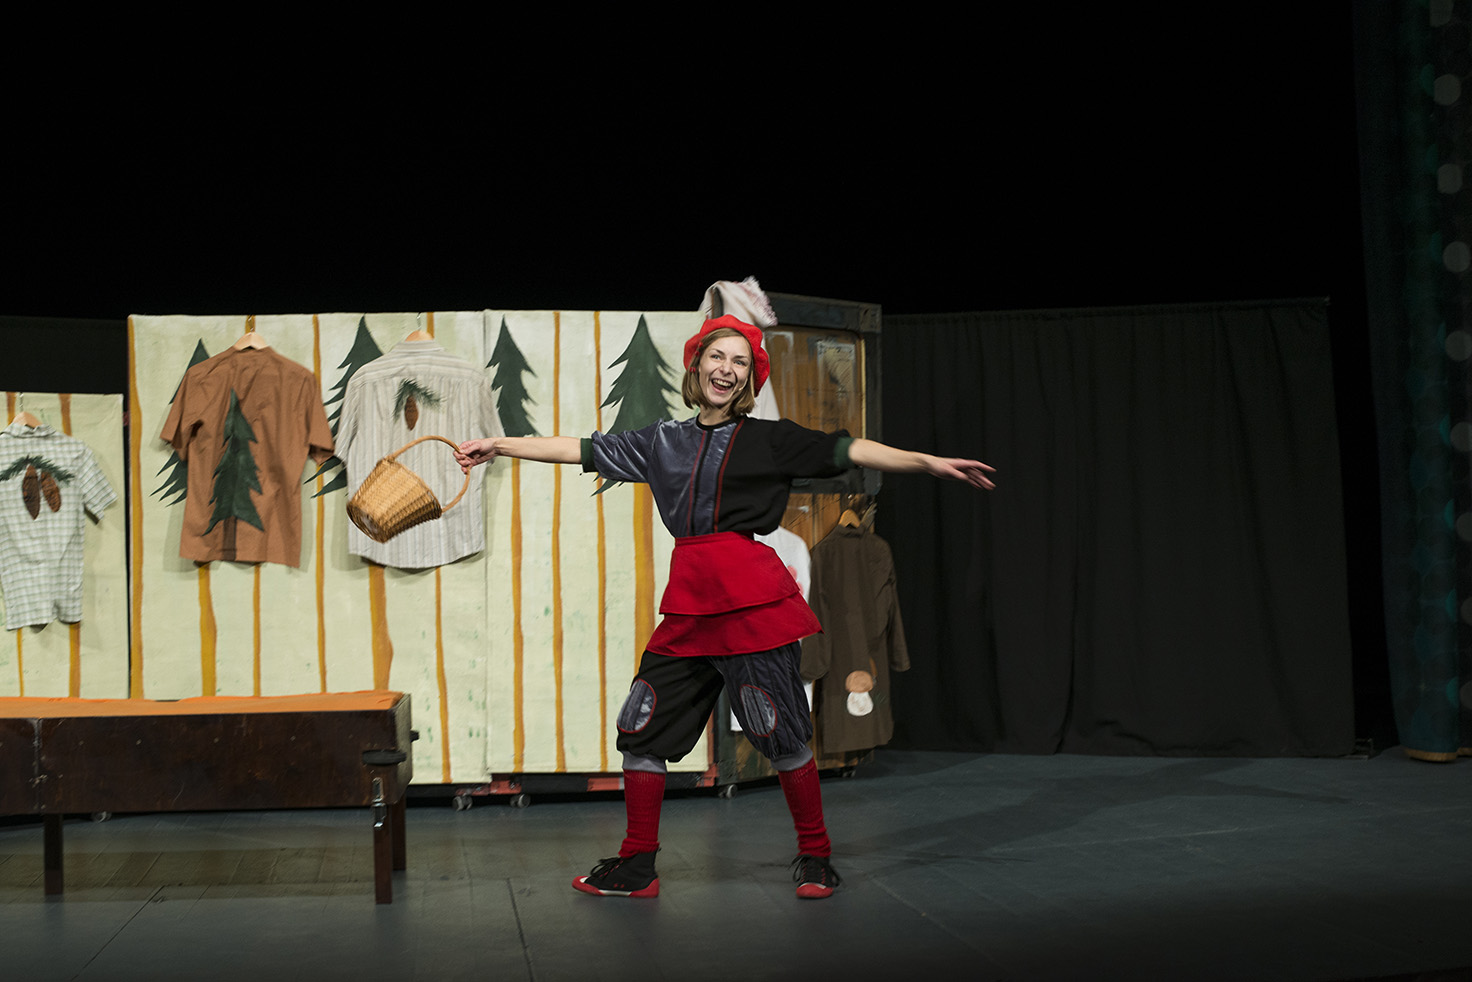 Little red riding hood - image 4